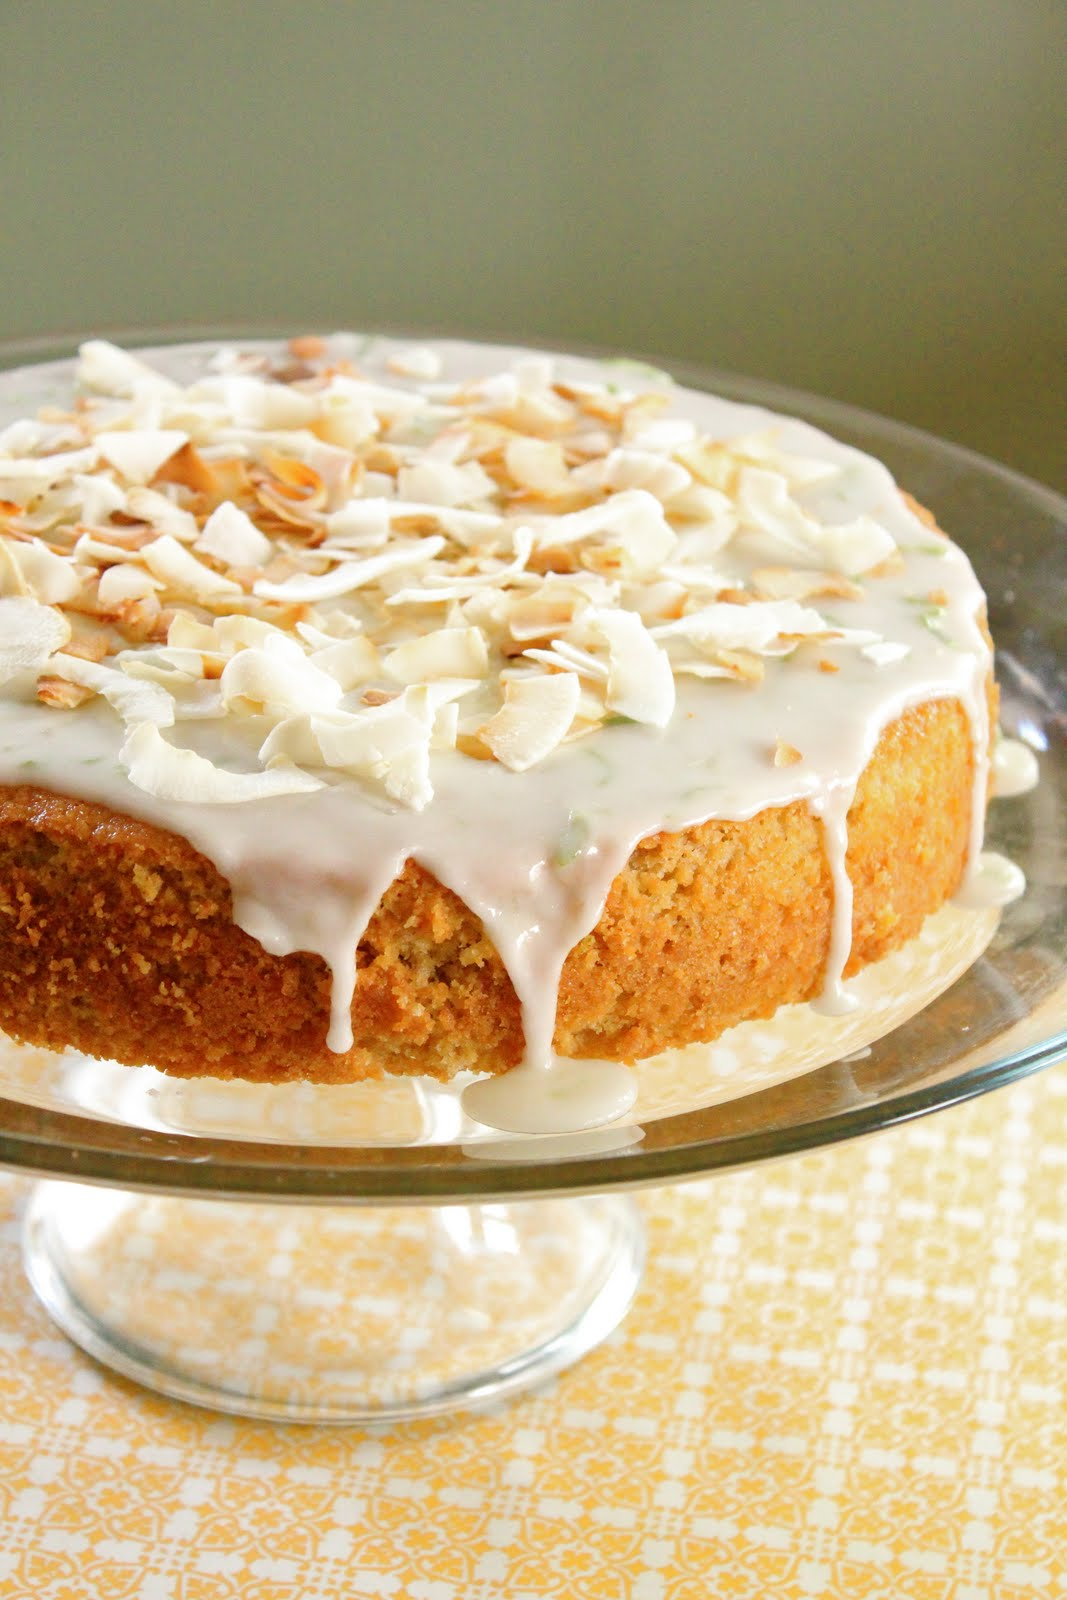 ... am super happy about posting this new recipe, coconut lime cake